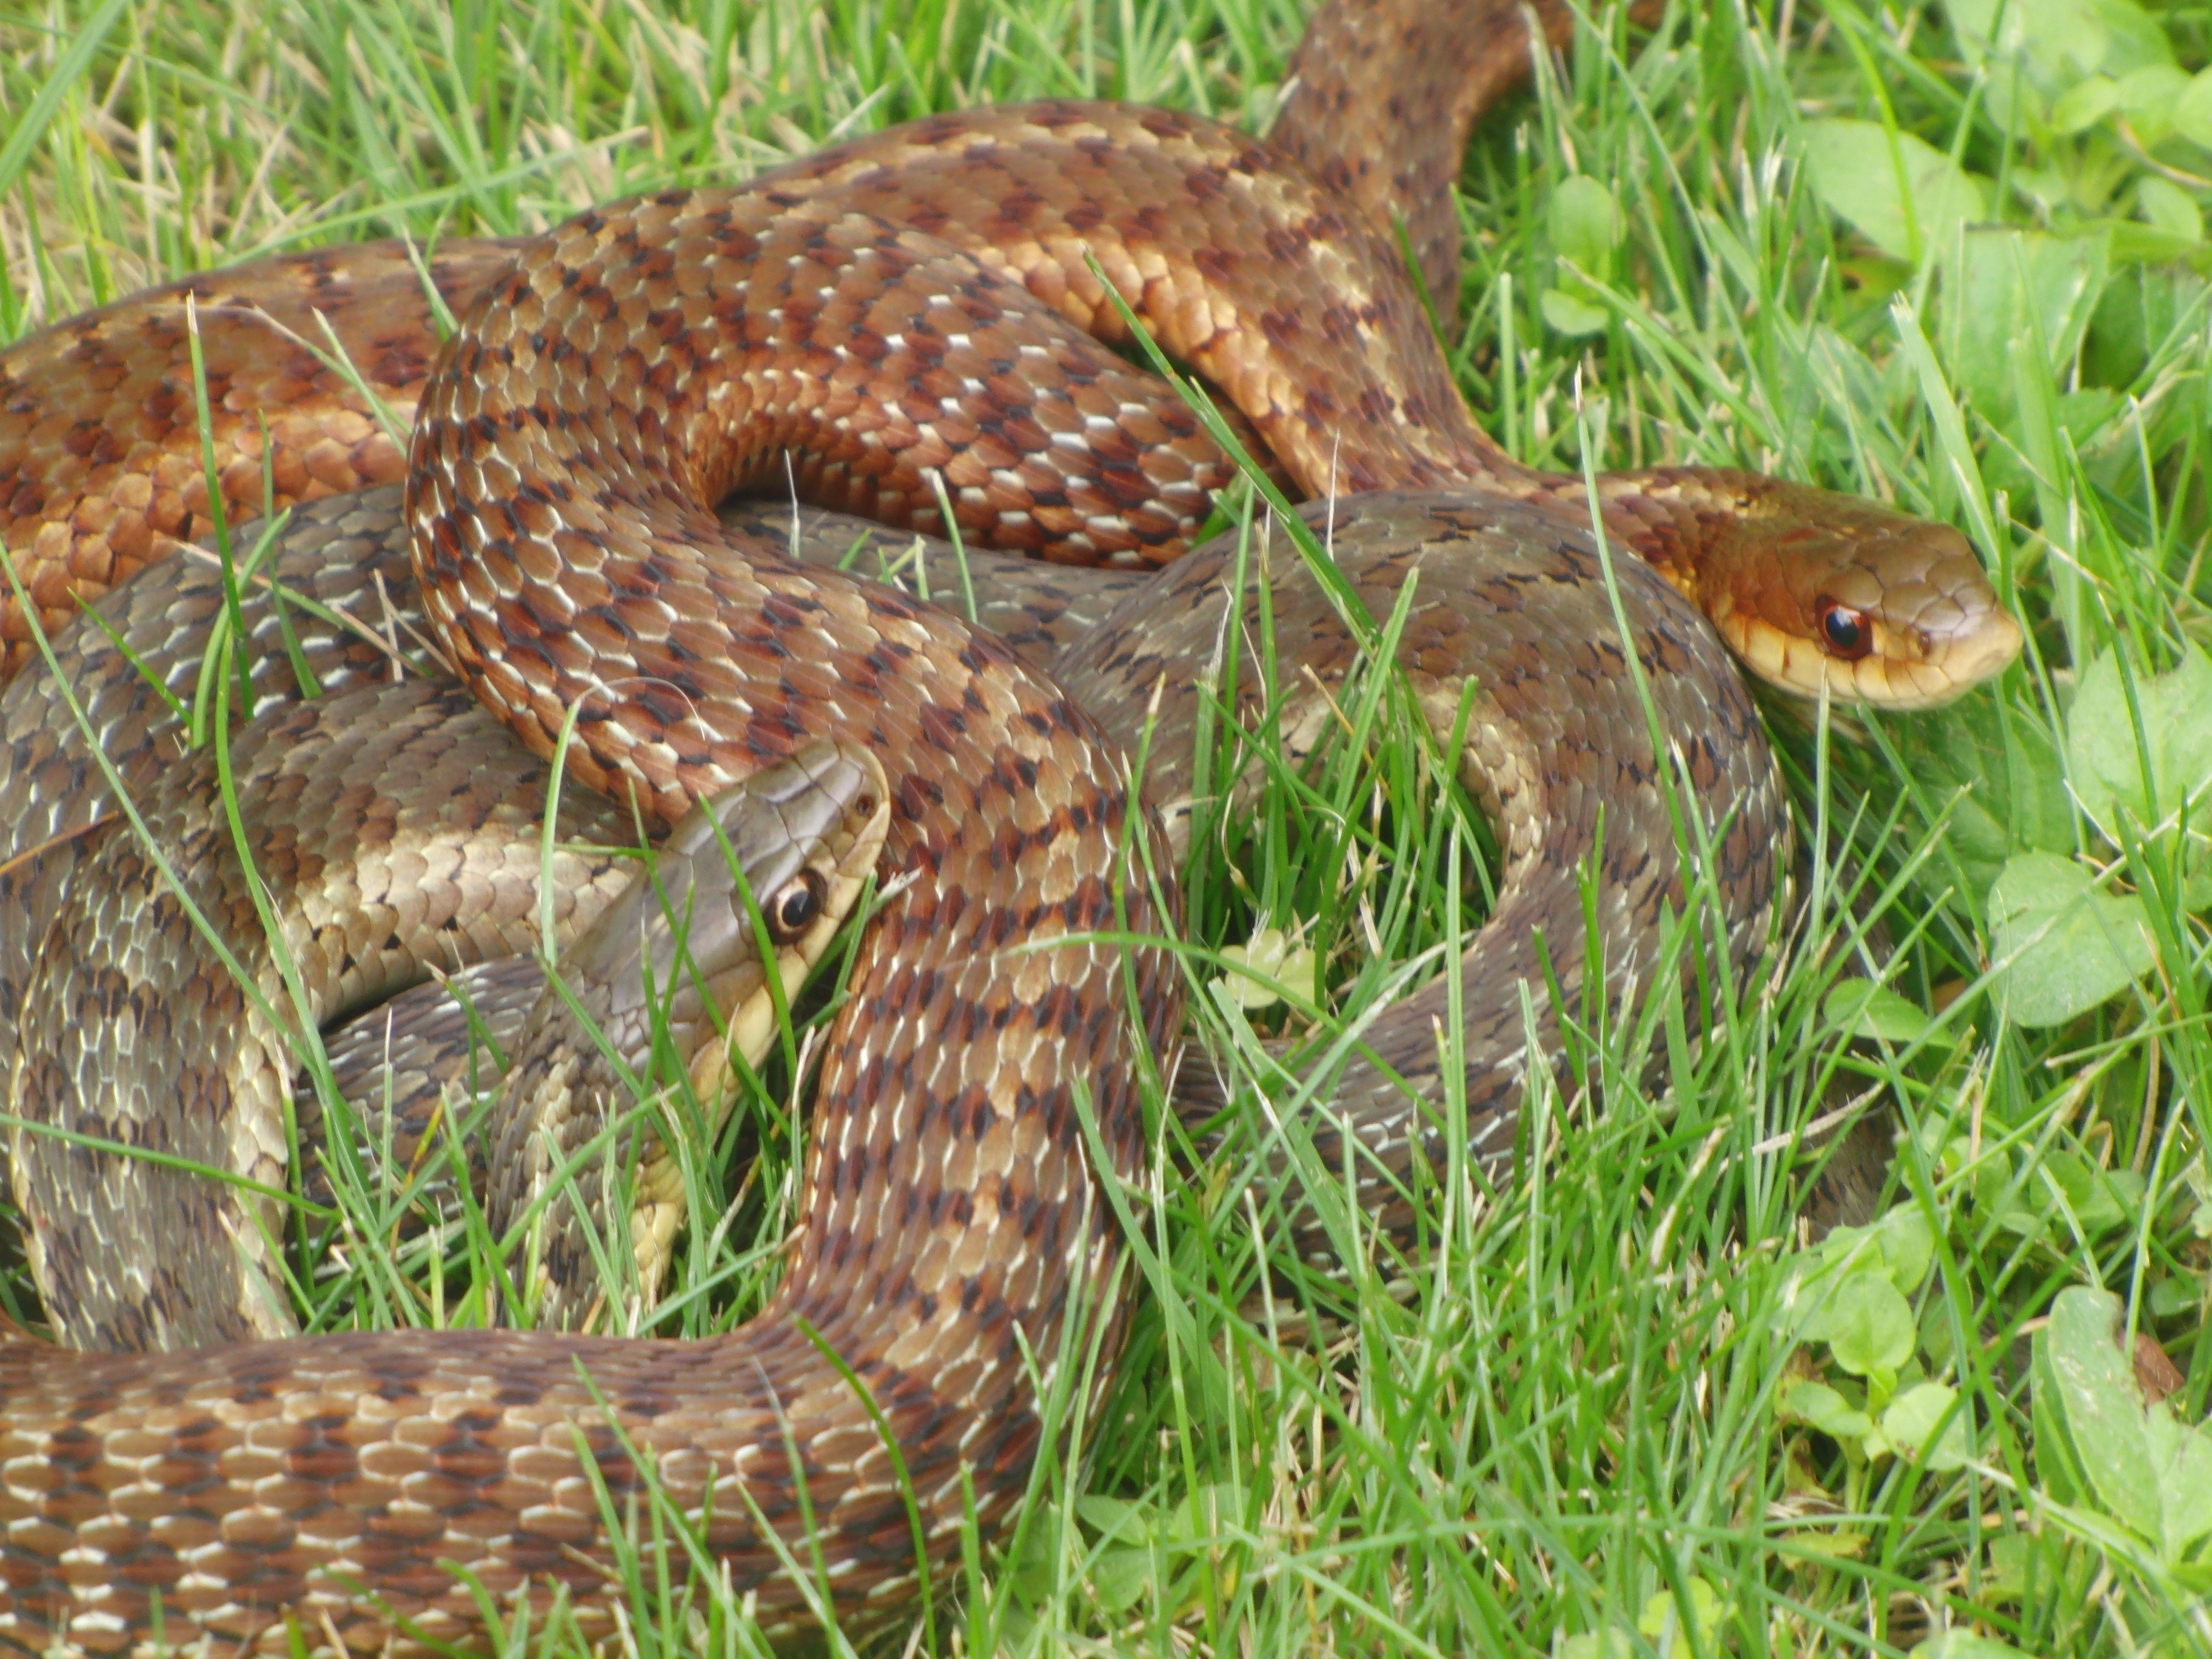 Snakes in the grass | witches whiskers